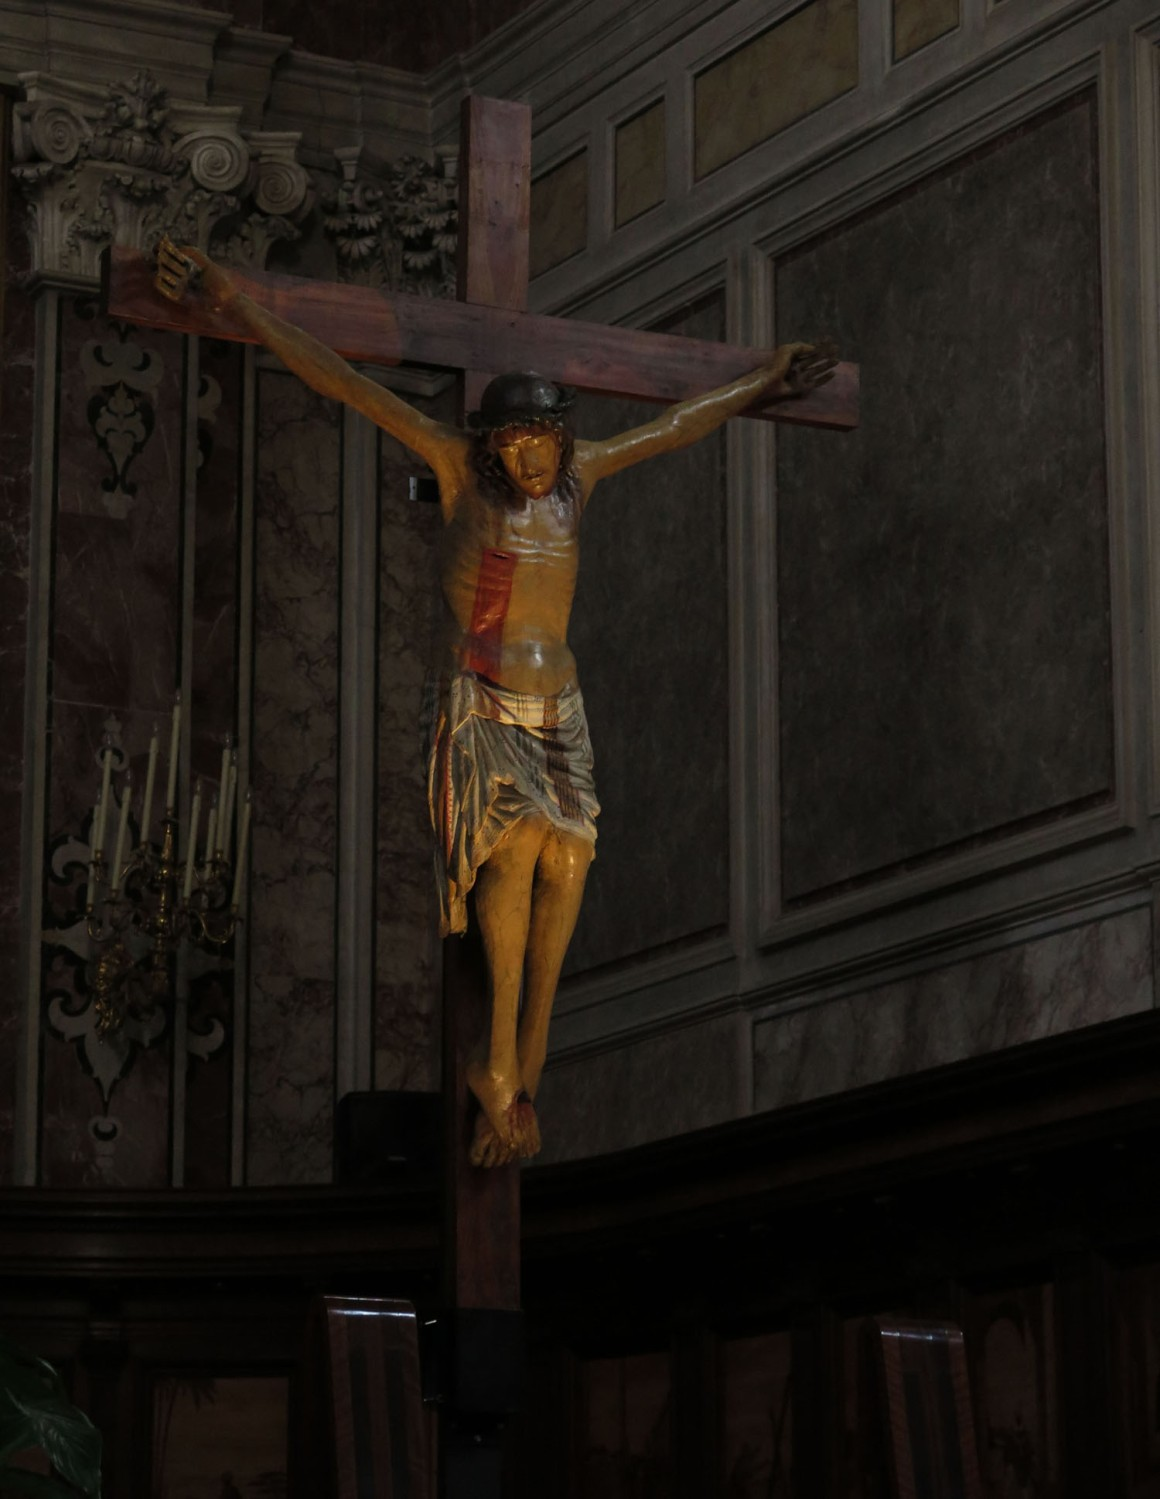 Italy-Sorrento-Crucifix